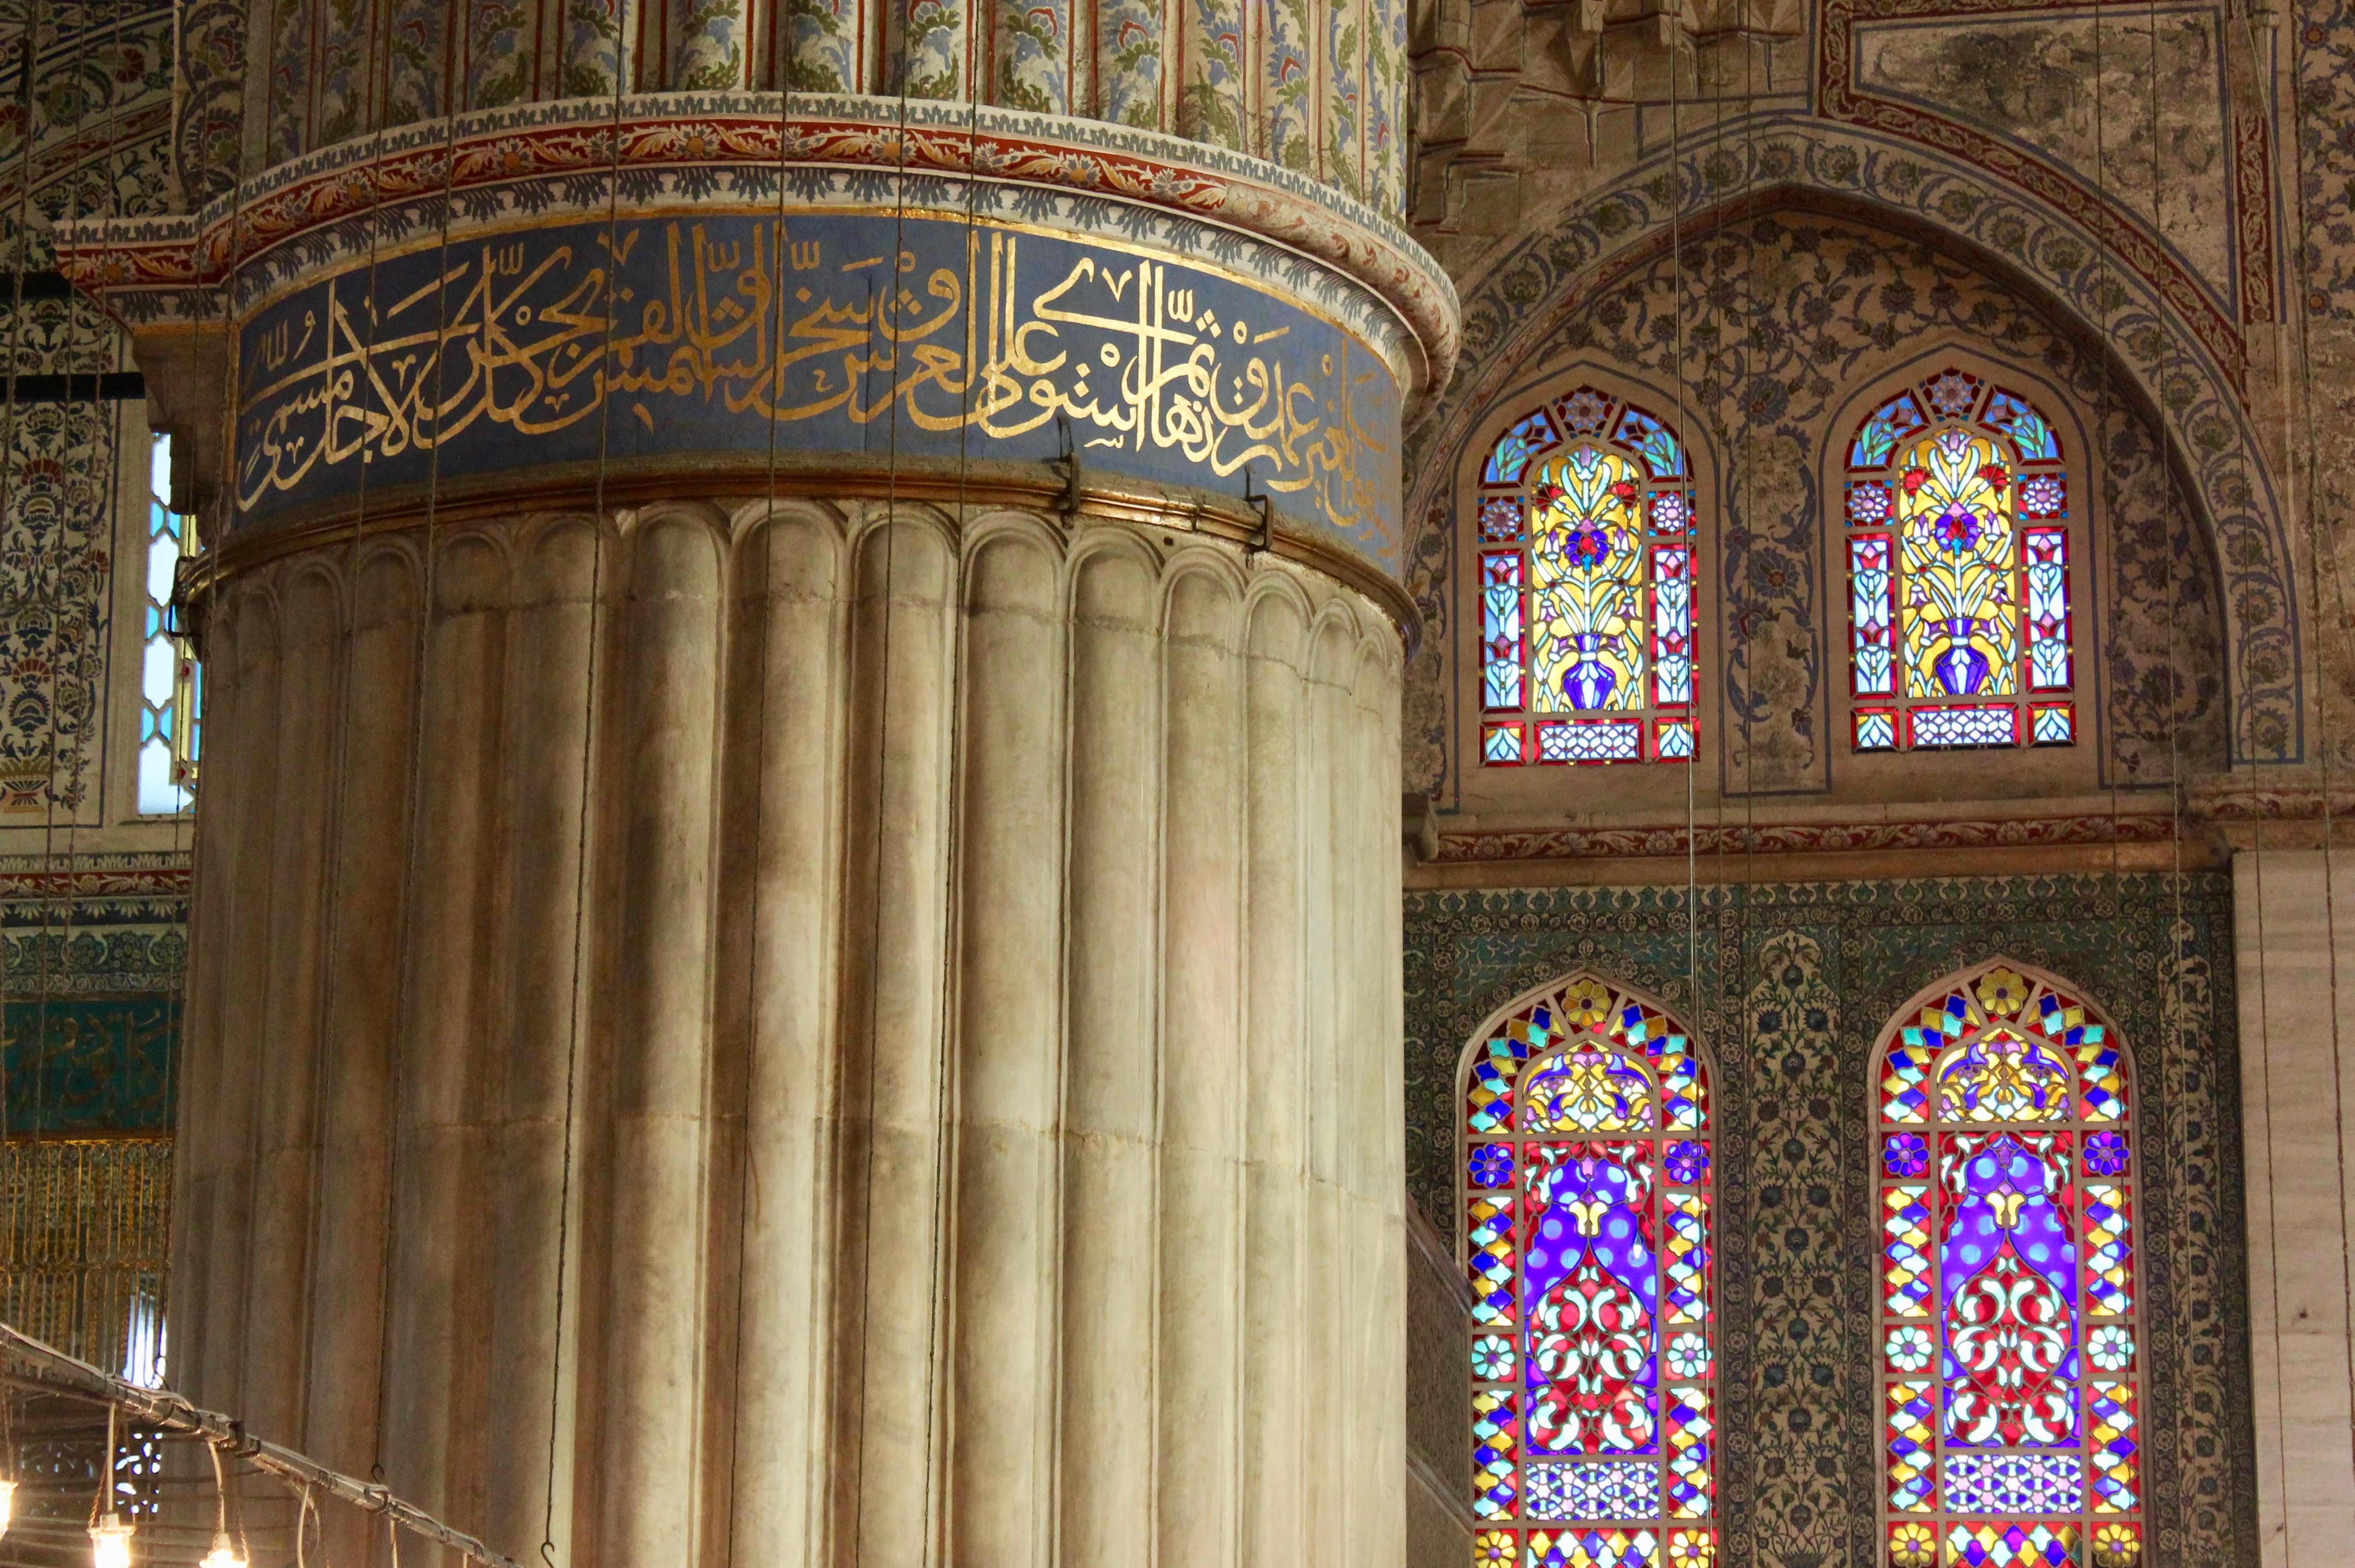 Blue_Mosque_interior_Marie-France_Roy.jpg?mtime=20190801115035#asset:106553